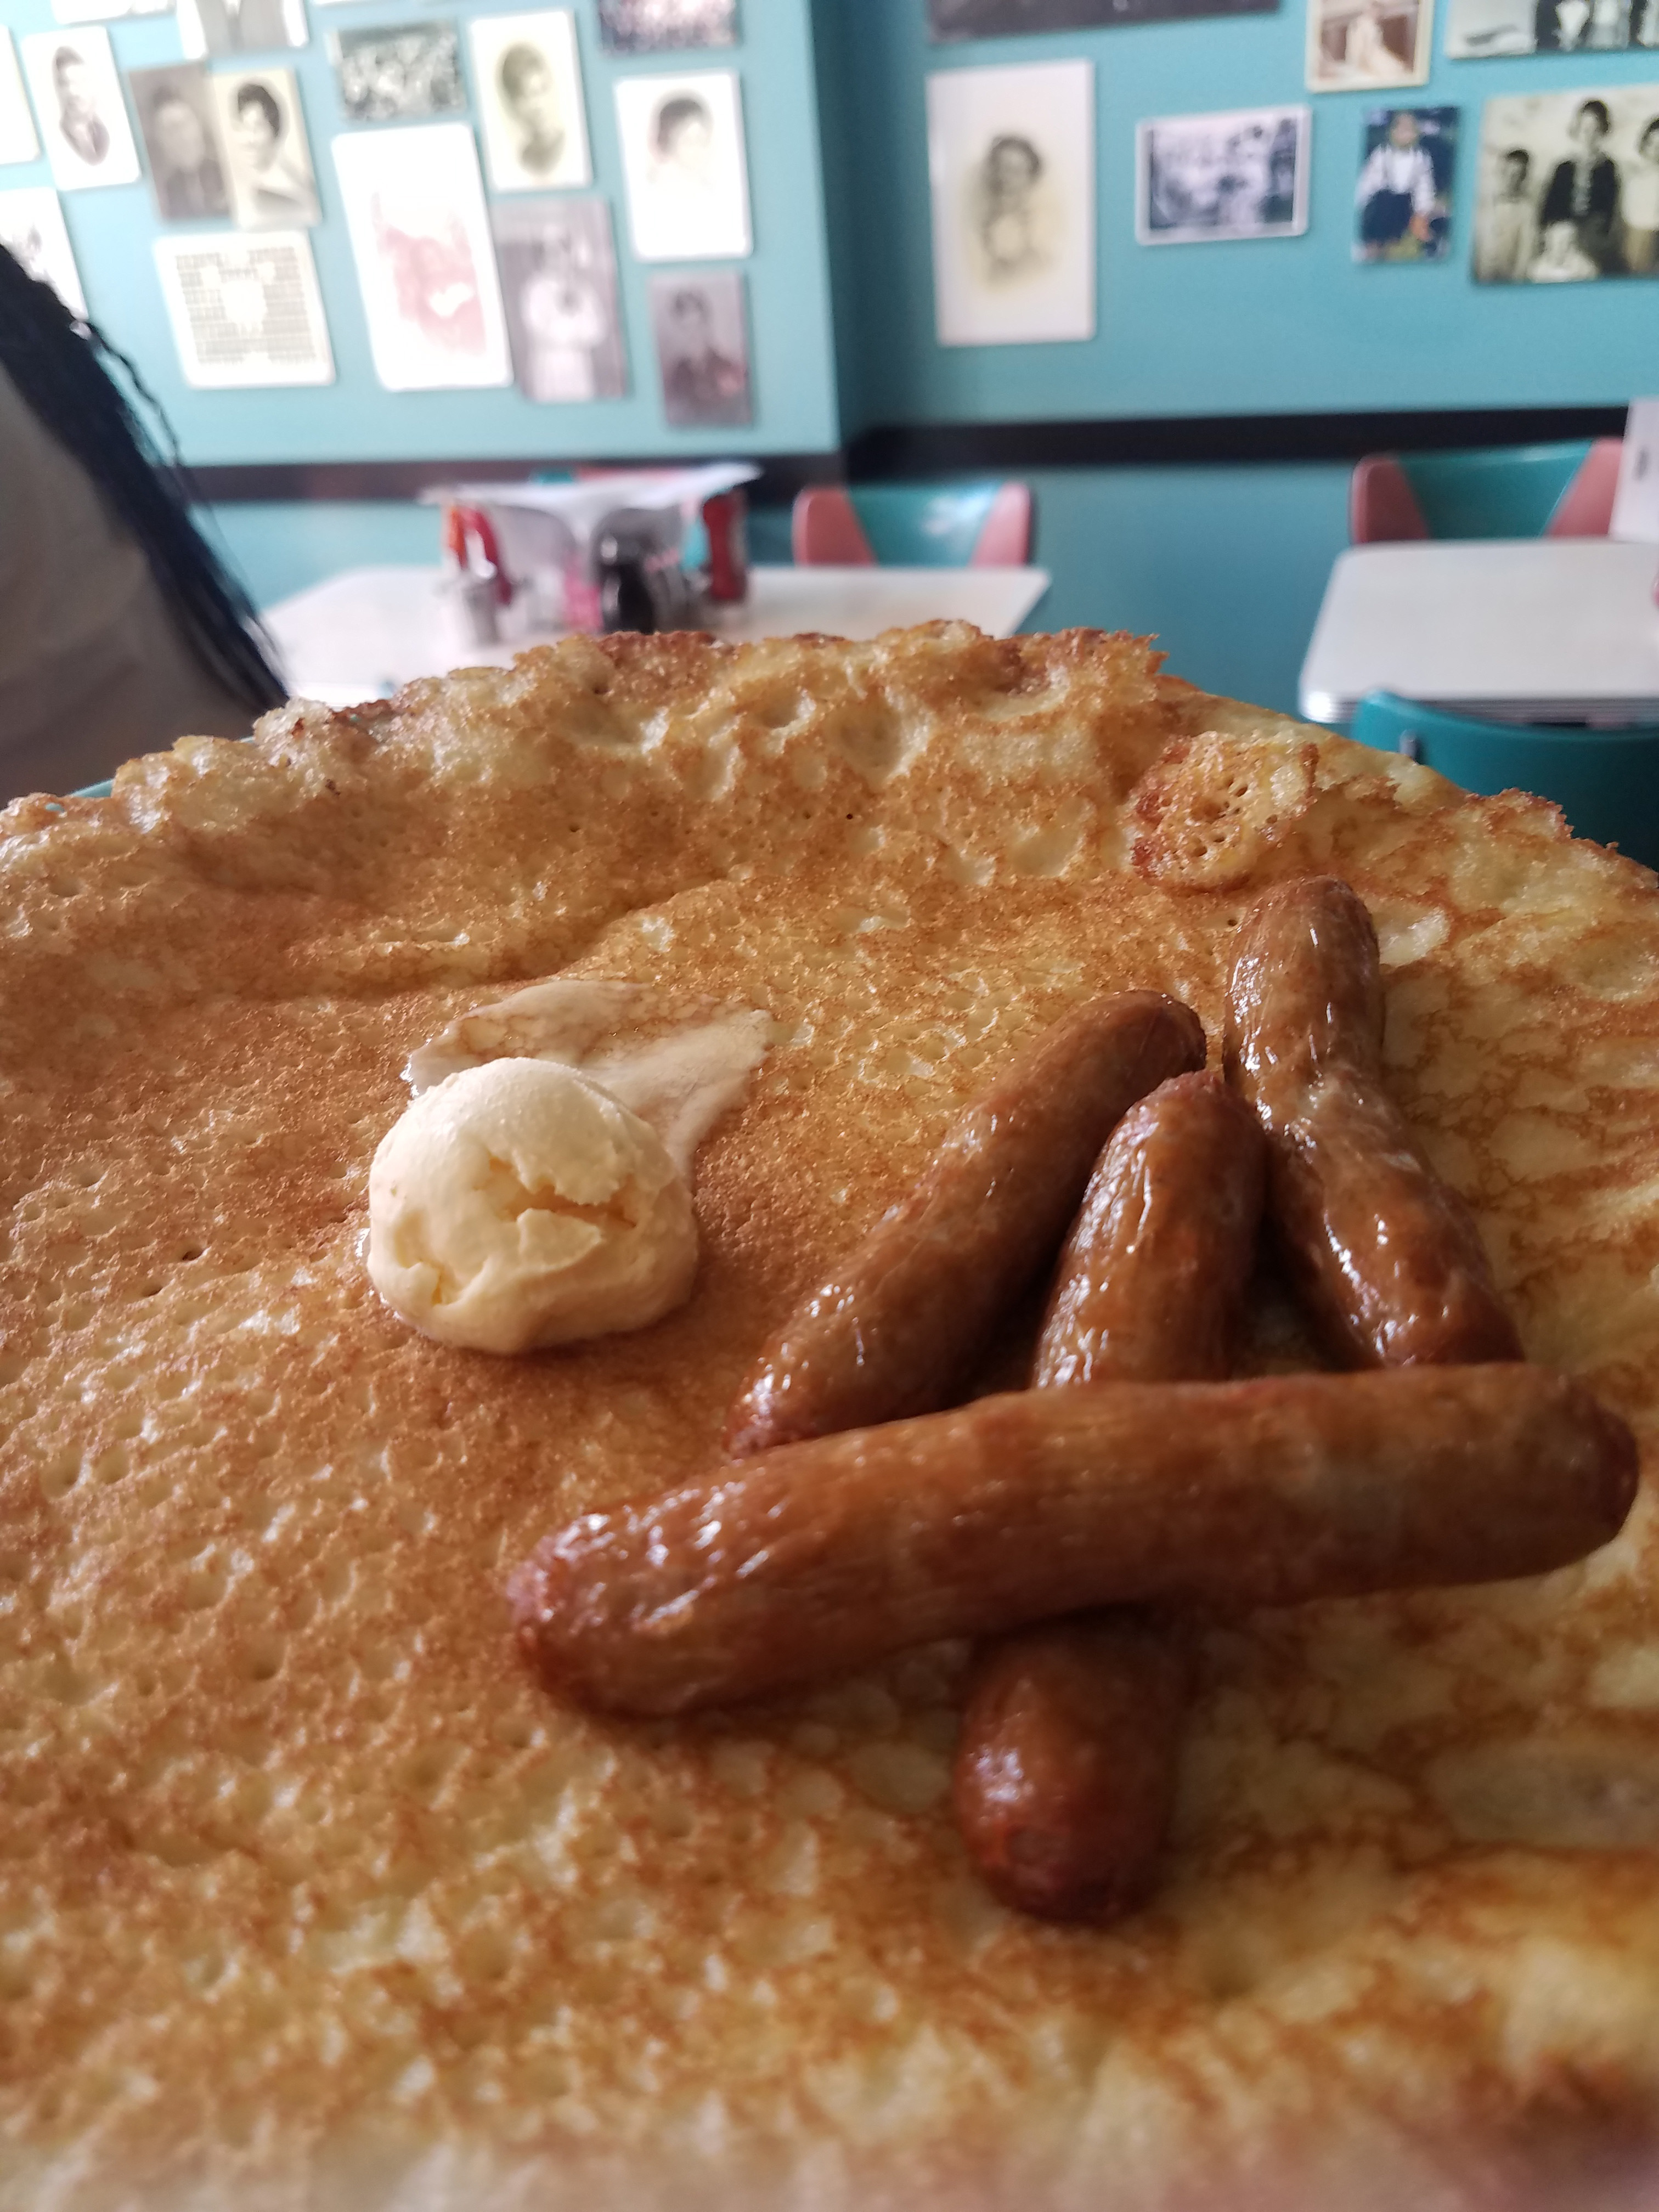 Hotcakes and sausage at Pamela's Diner in Pittsburgh Strip District